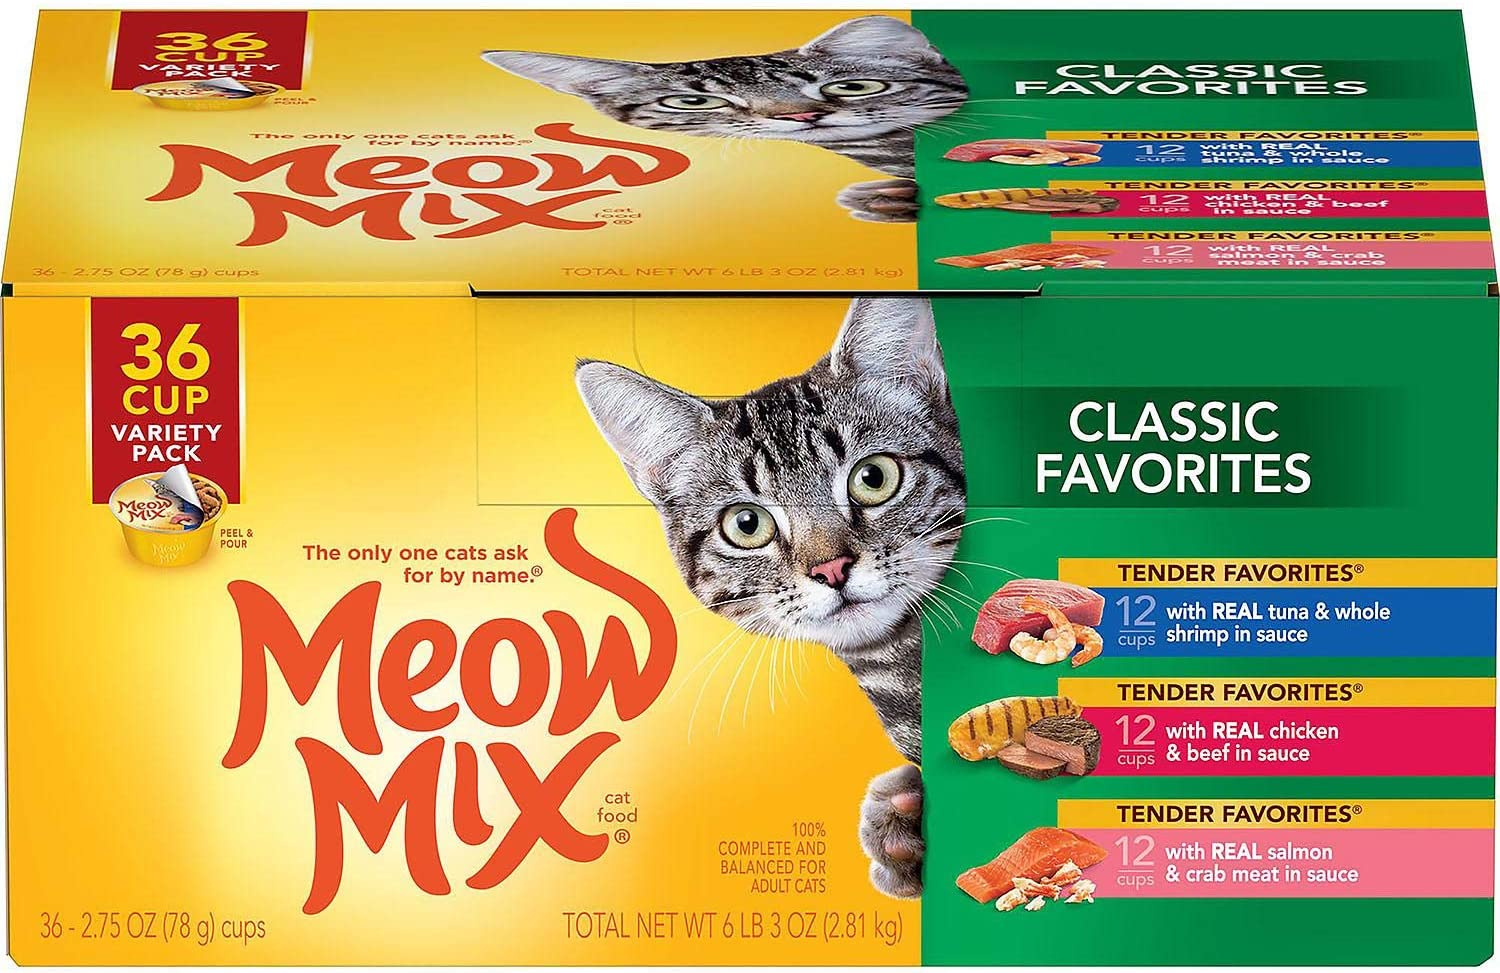 Meow Mix Classic Favorites, Variety Pack (2.75 oz., 36 ct.) - 1 BOX